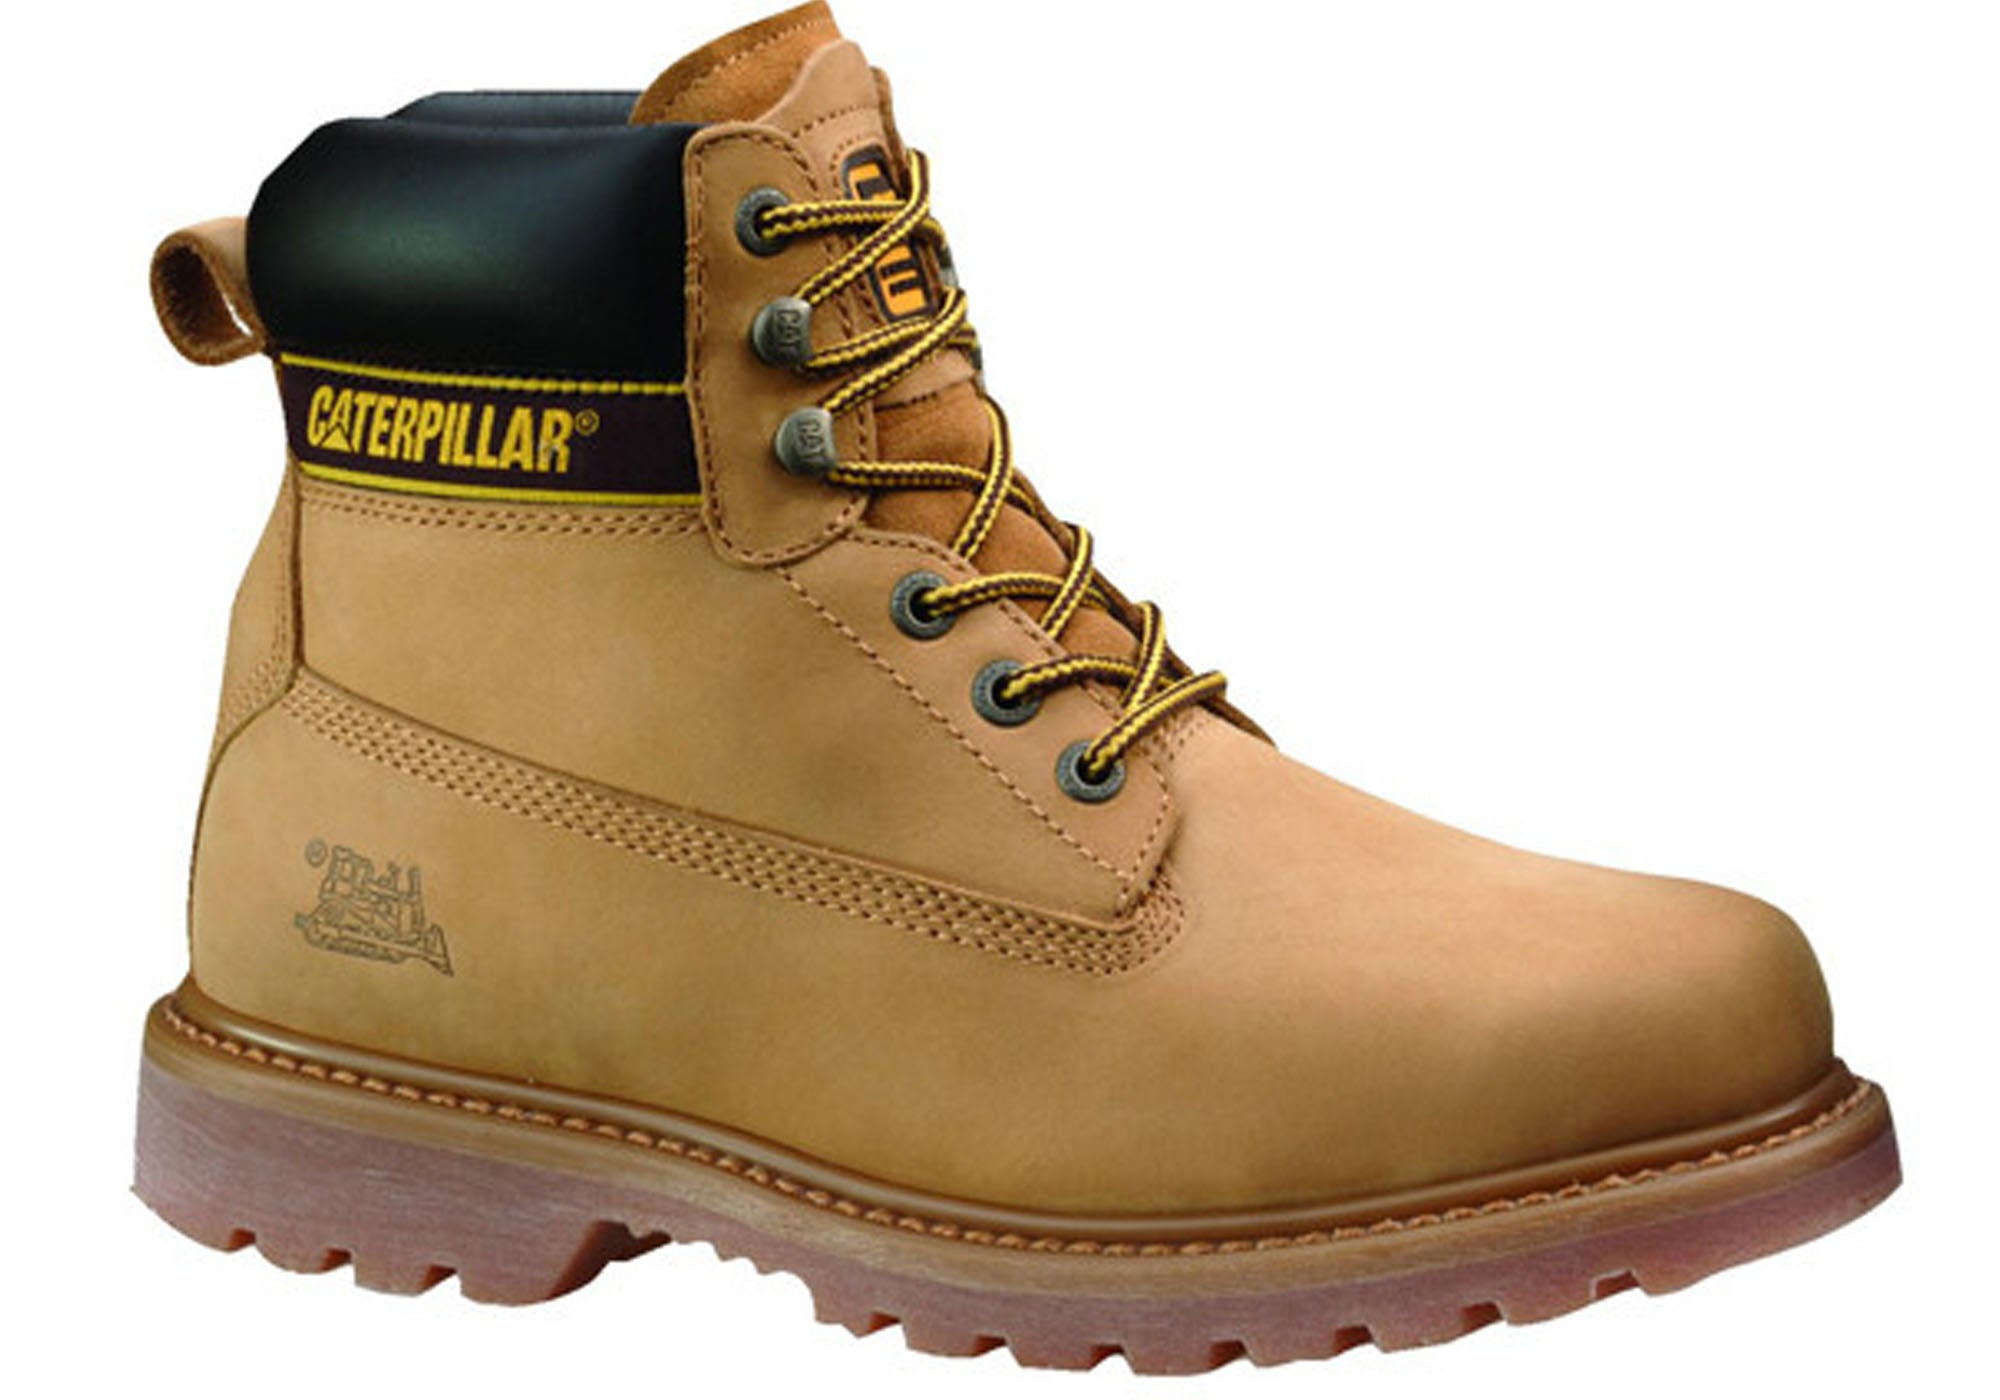 Caterpillar Cat Holton Laceup Steel Toe Mens Work Boots Brand